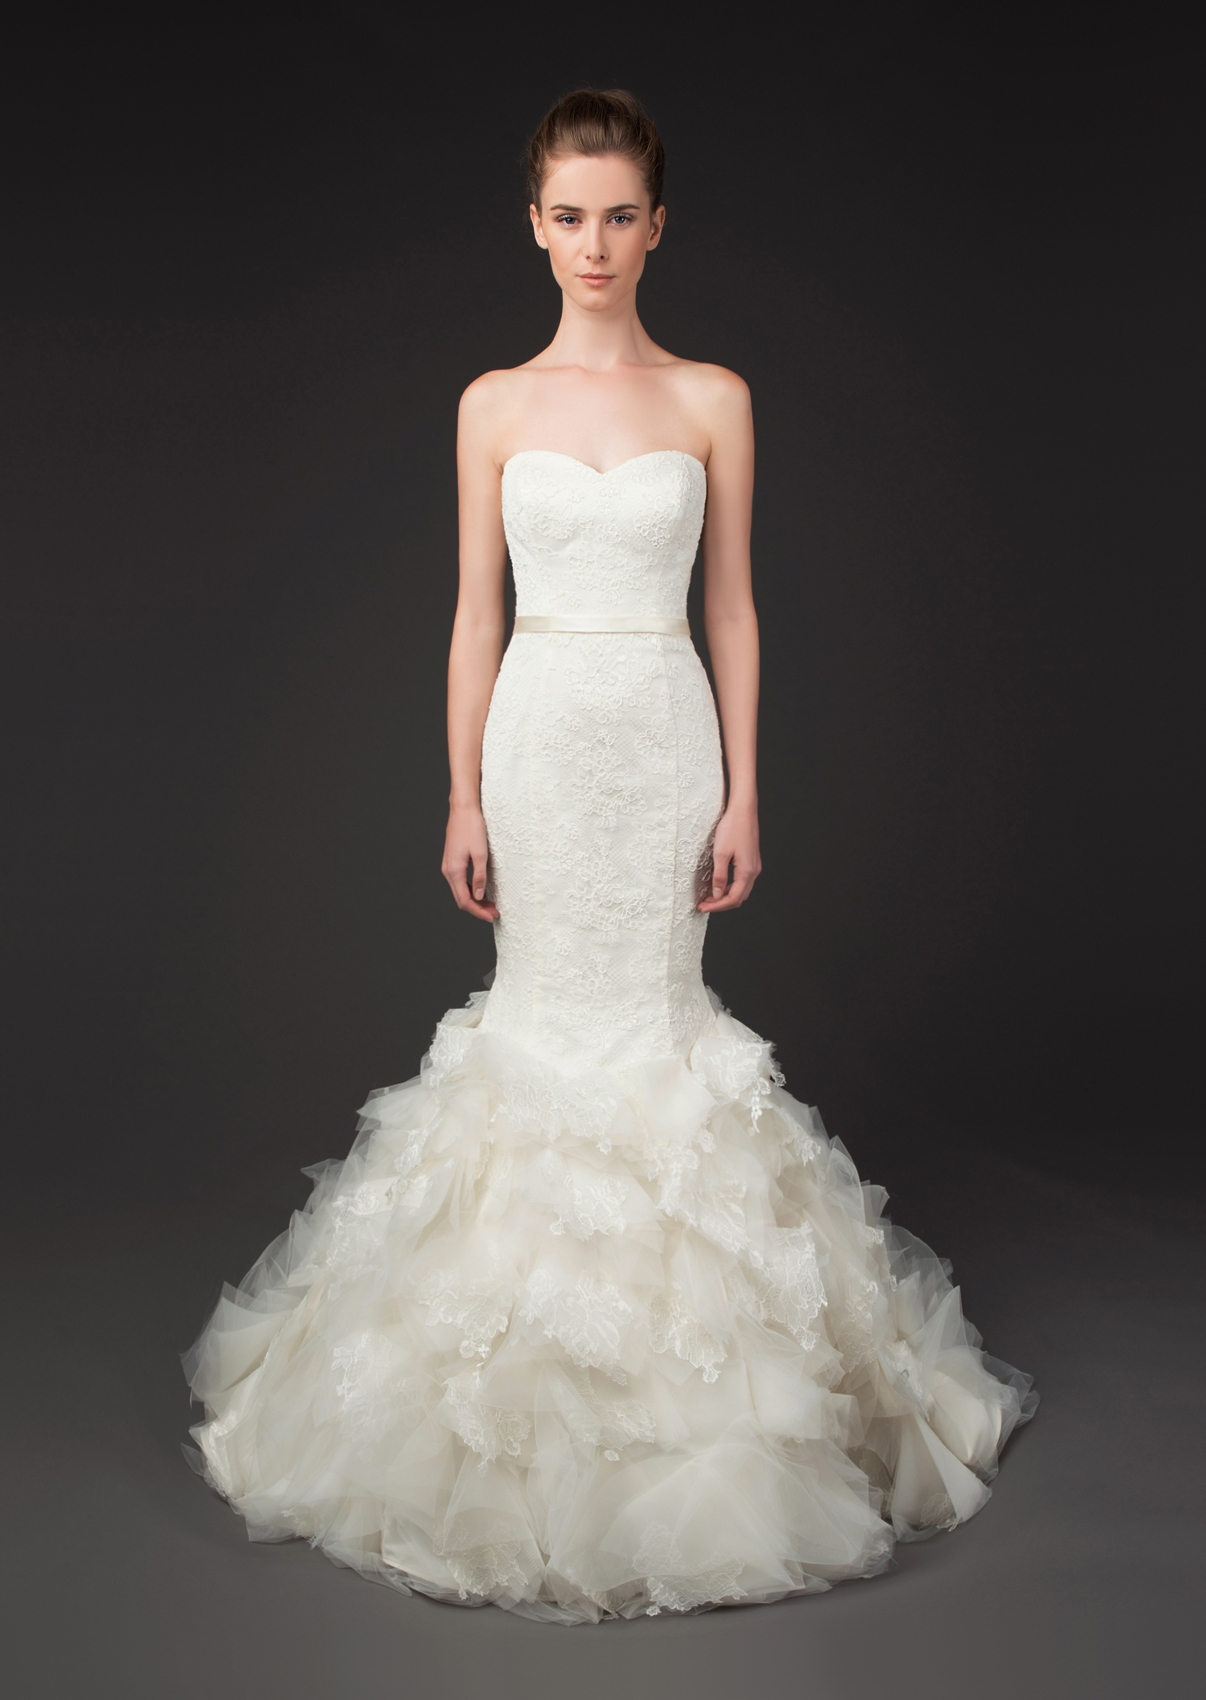 winnie-couture-wedding-dresses-fall-2014-diamond-label-collection-1-01202014